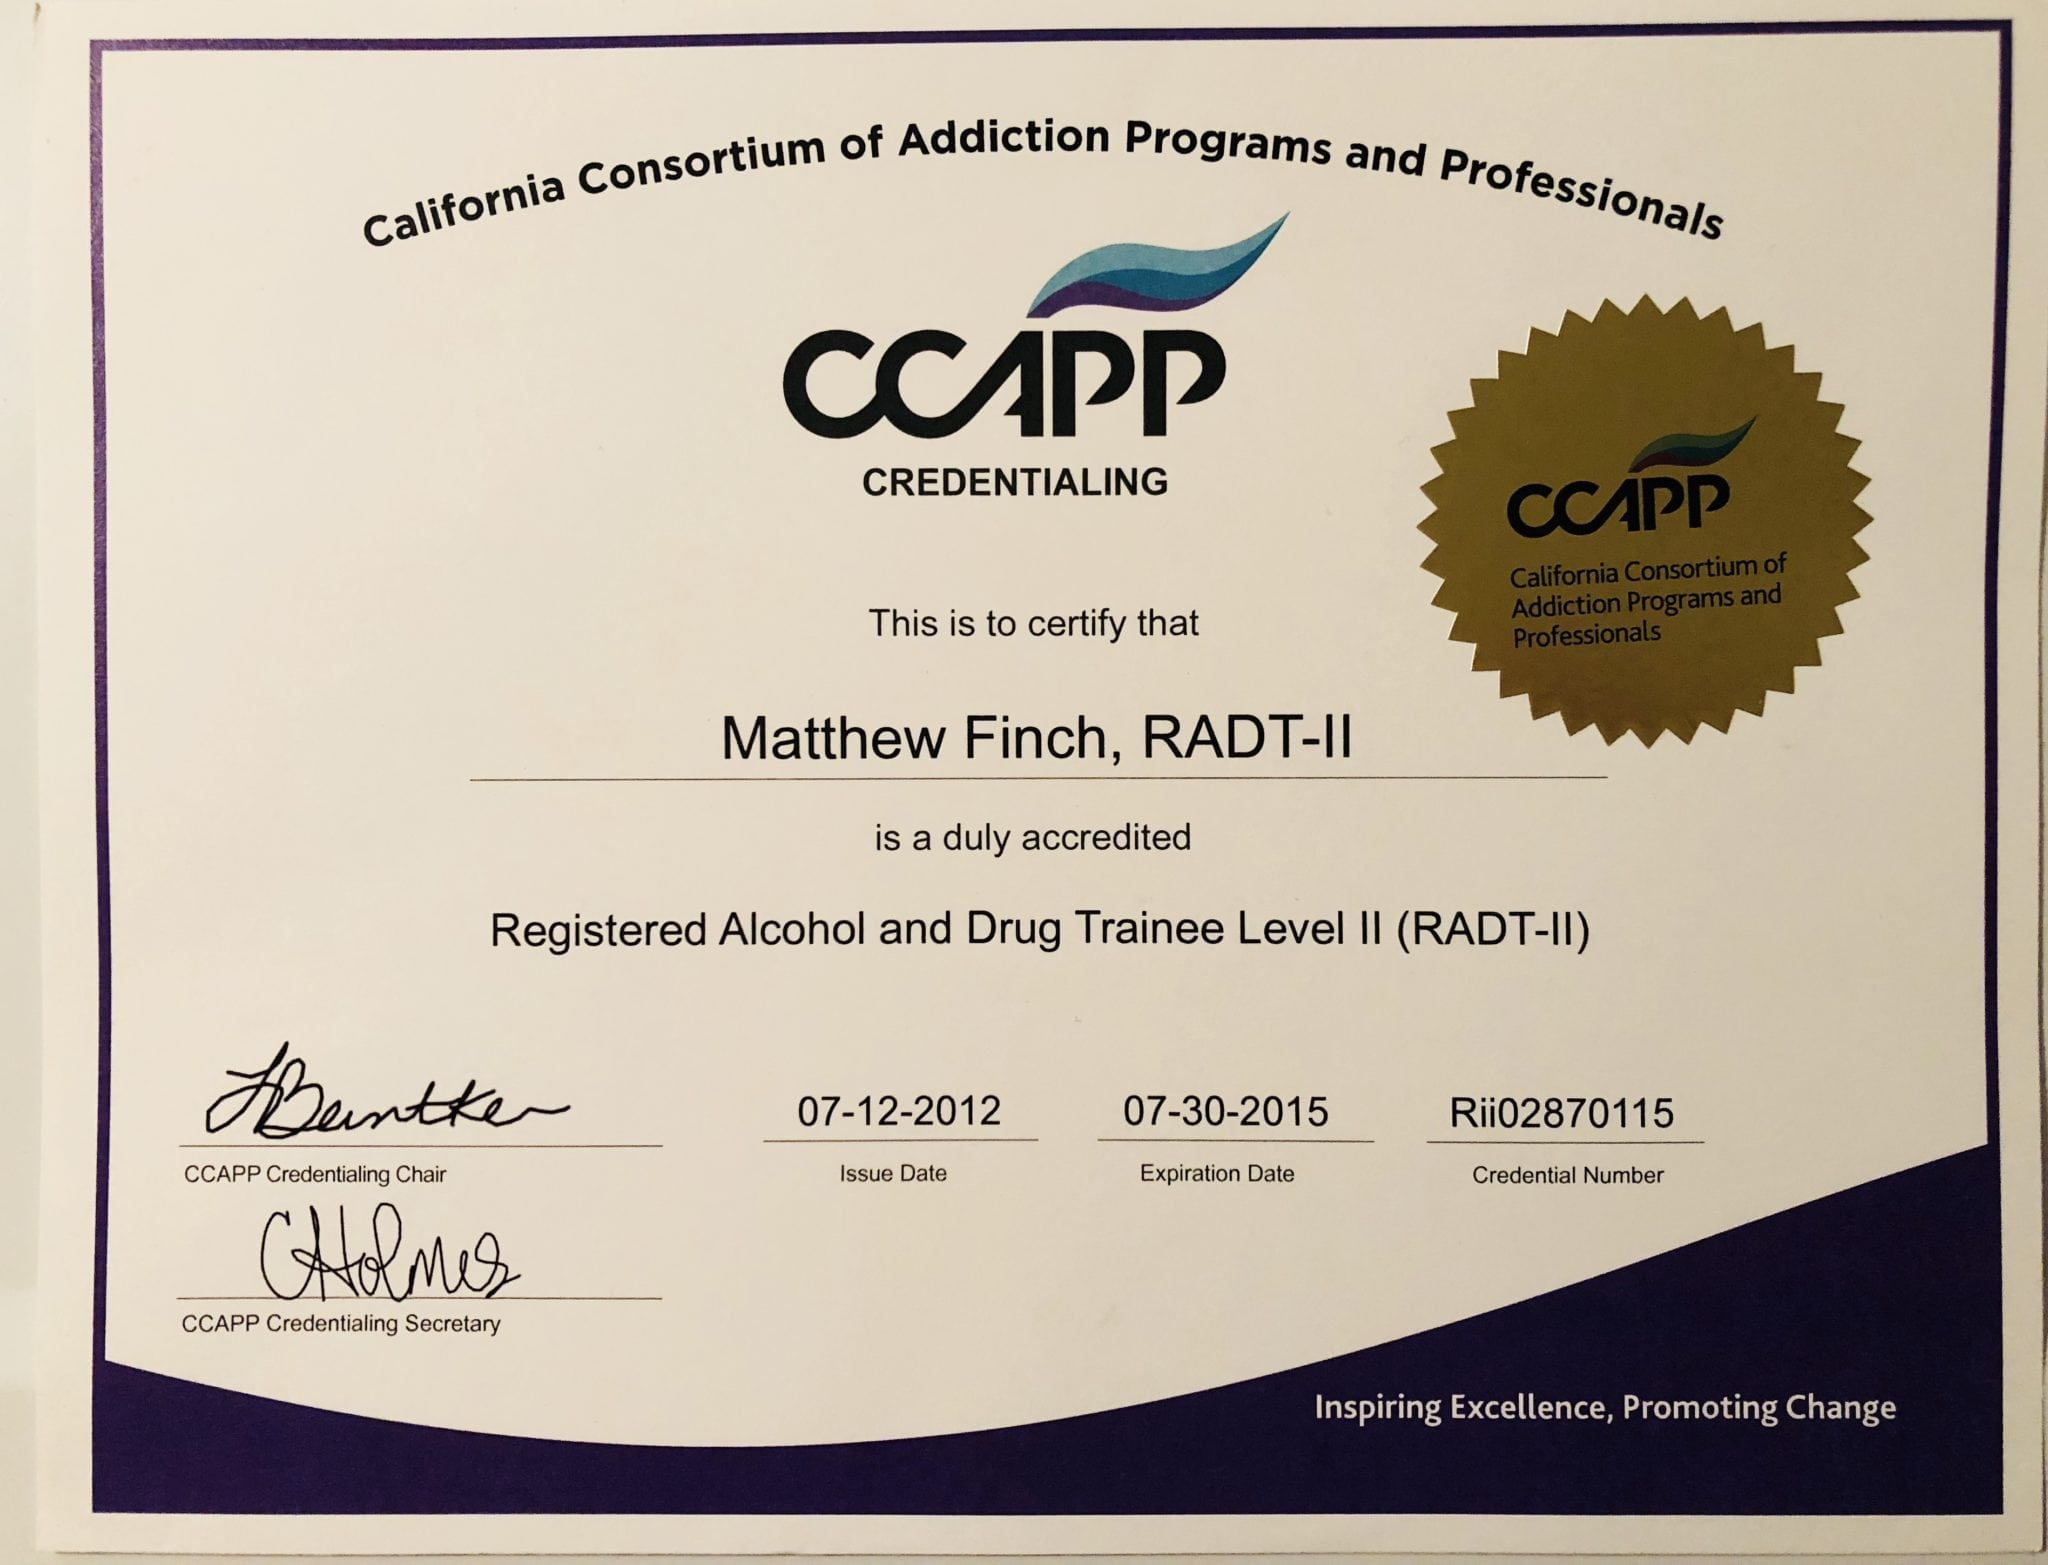 Professional certifications achievements awards opiate 9 17 12 graduated from mueller college with a certificate of completion of the 720 hour alcohol and drug counseling 1betcityfo Choice Image